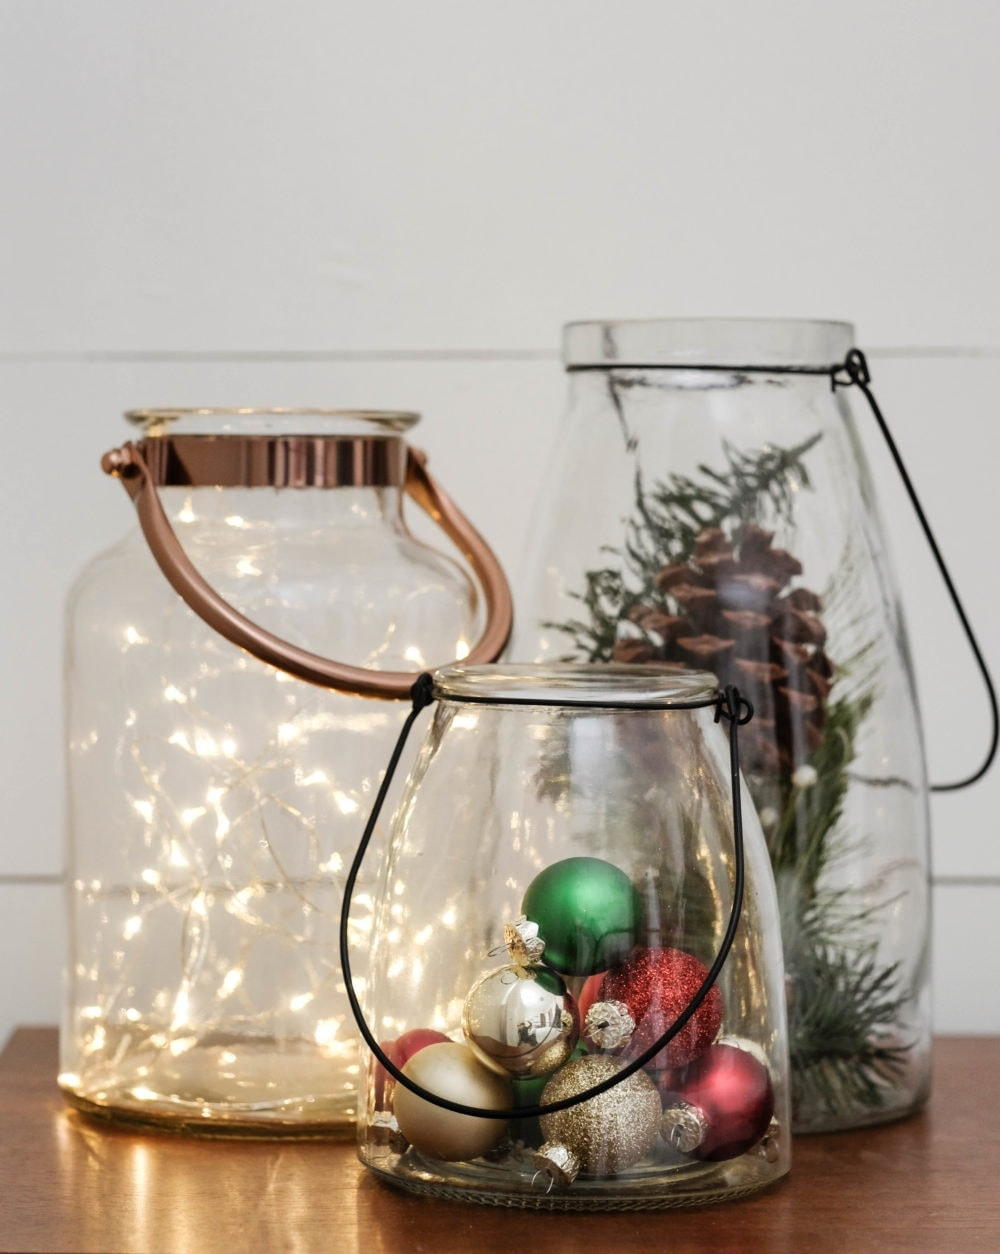 Christmas decor using 3 glass lanterns filled with twinkle lights, Christmas ornaments and pinecones